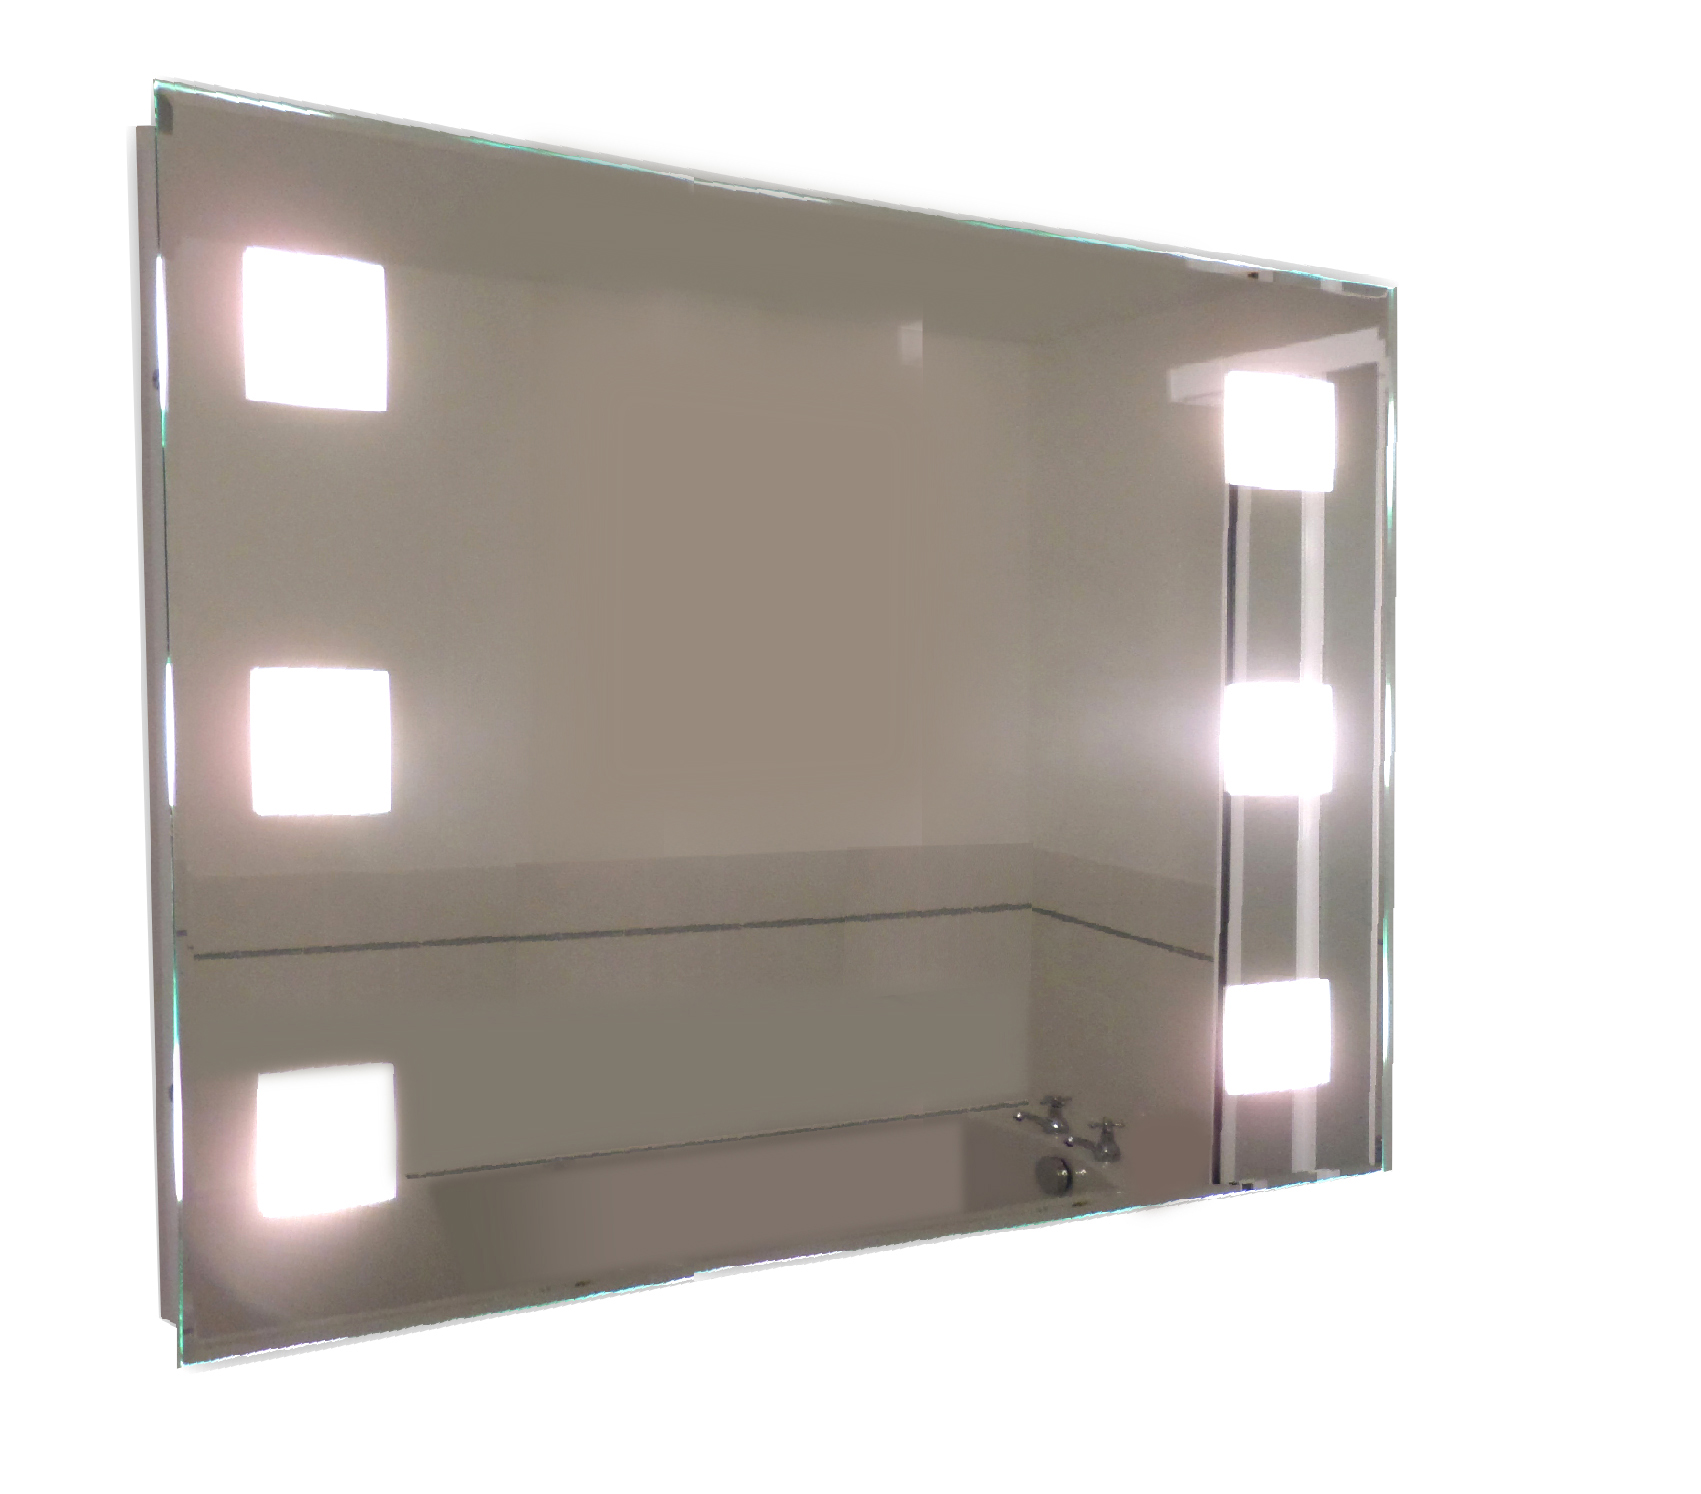 Beauteous 25 bathroom mirror lights 900 x 600 design for Mirror 900 x 600